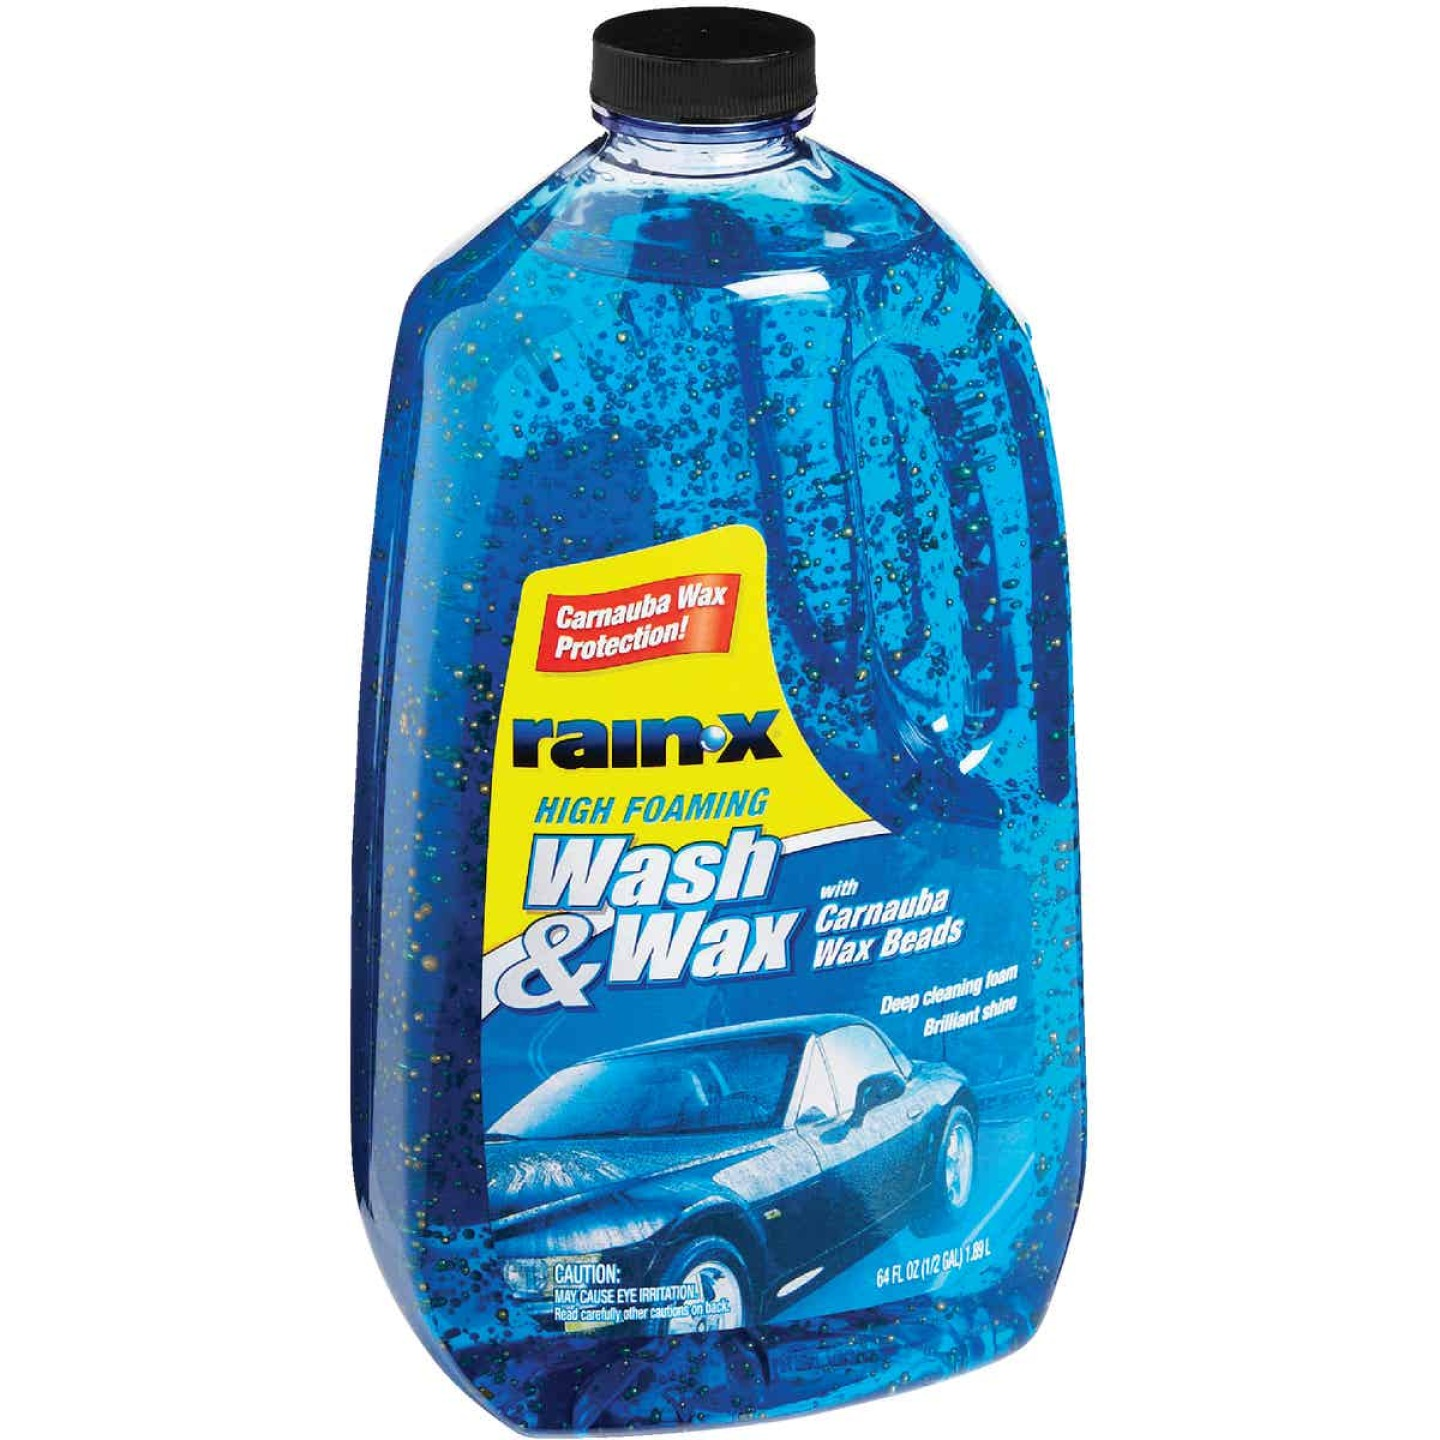 RAIN-X 64 Oz. Liquid High Foaming Car Wash & Wax w/Carnauba Wax Image 4